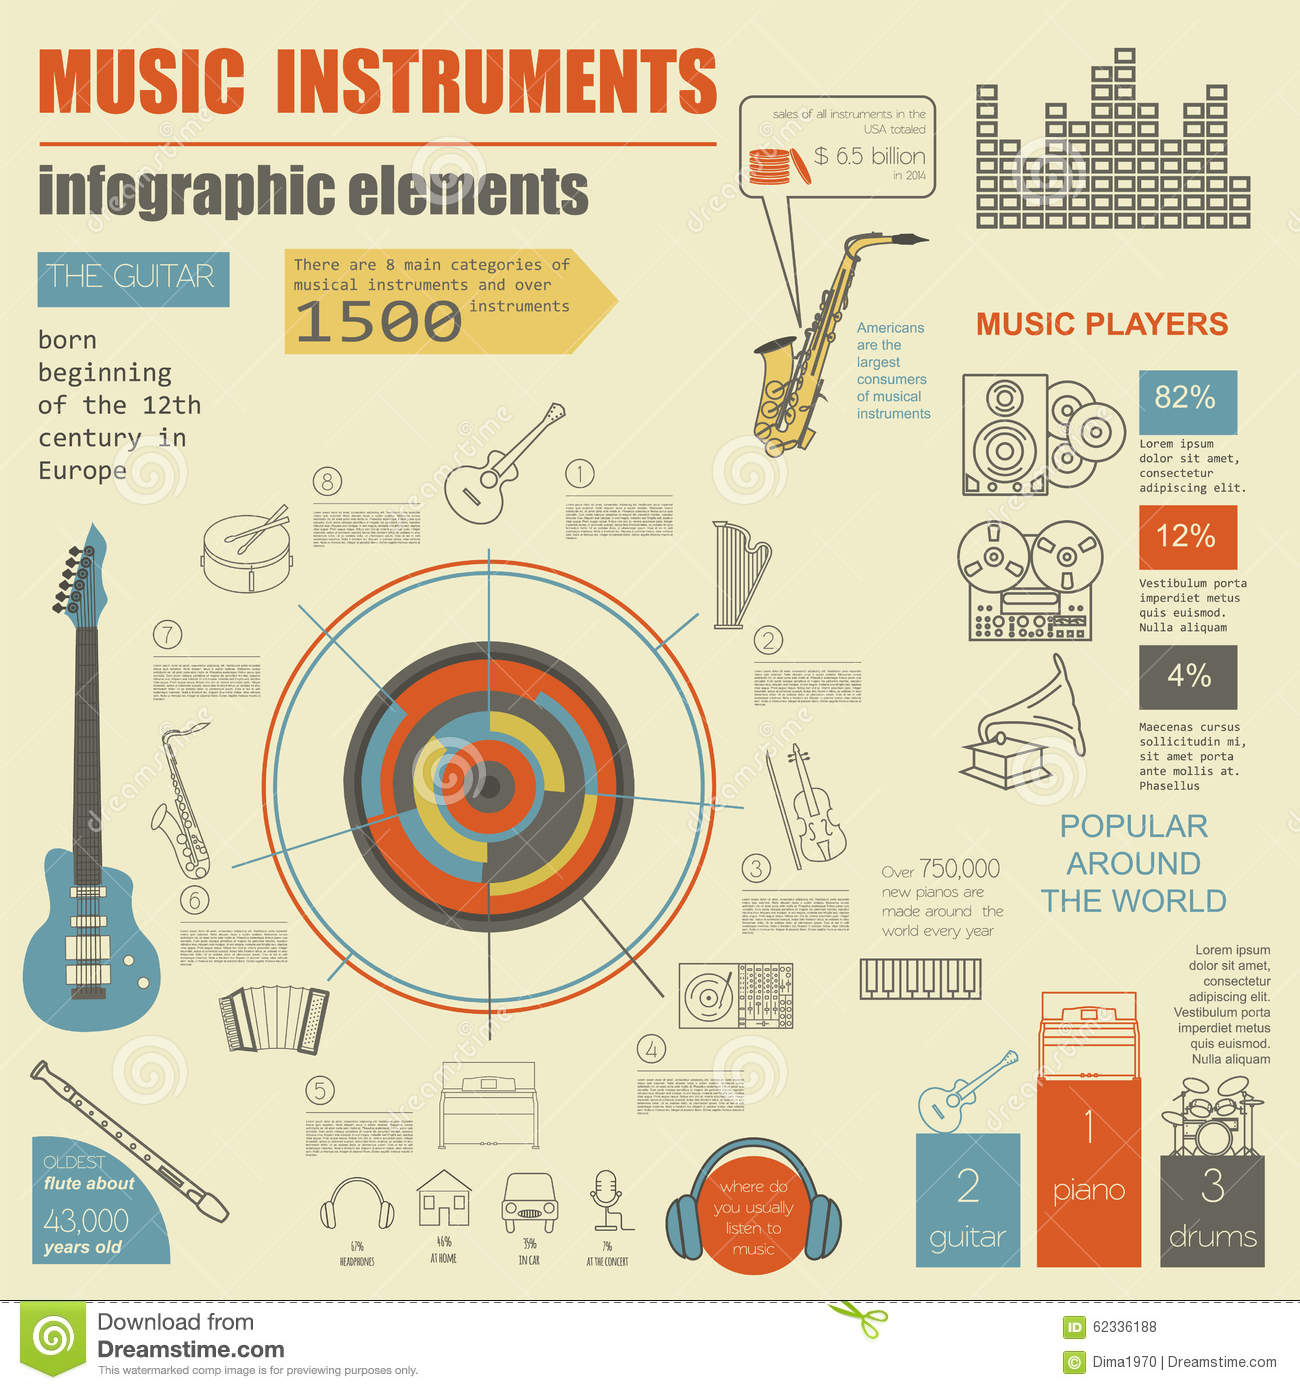 Worksheets 4 Classification Of Musical Instruments musical instruments graphic template all types of instr instr